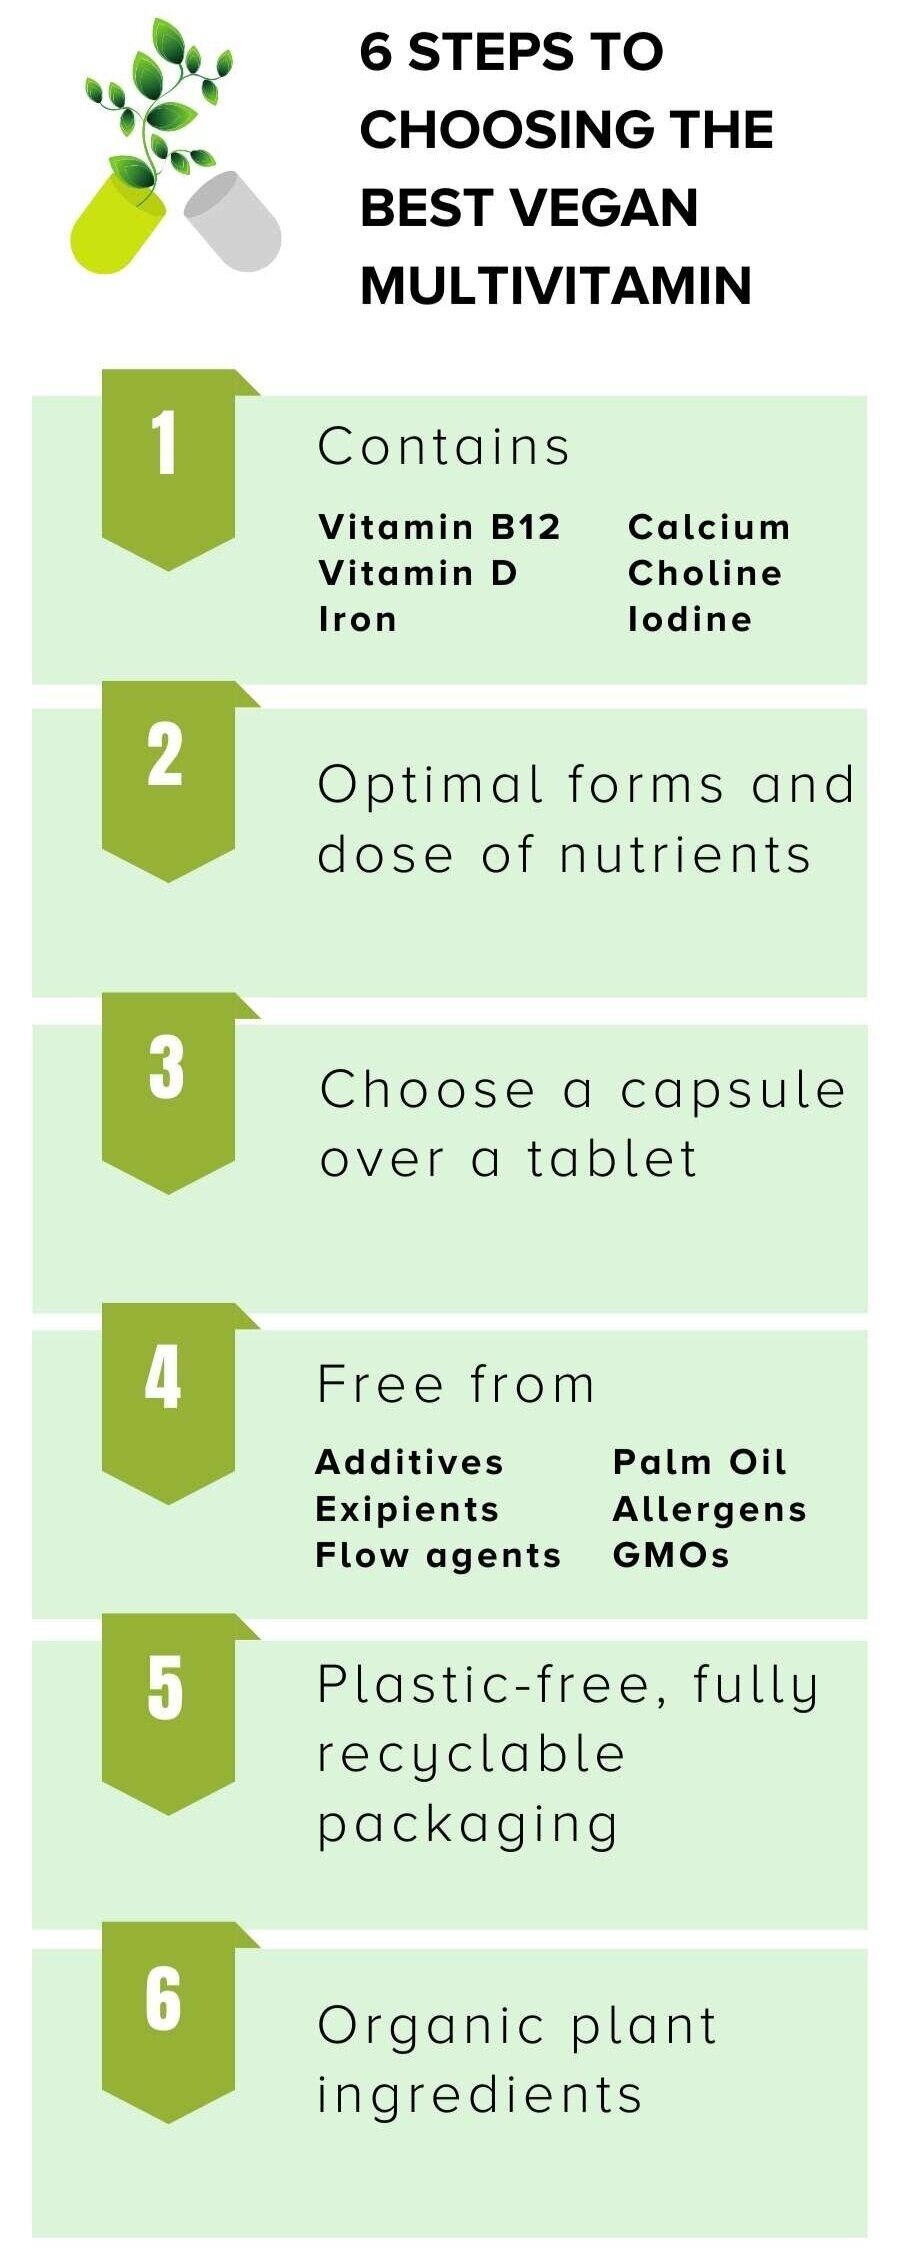 How To Choose The Best Multivitamin For Vegan And Vegetarian Diets Uk Ethical Nutrition Co